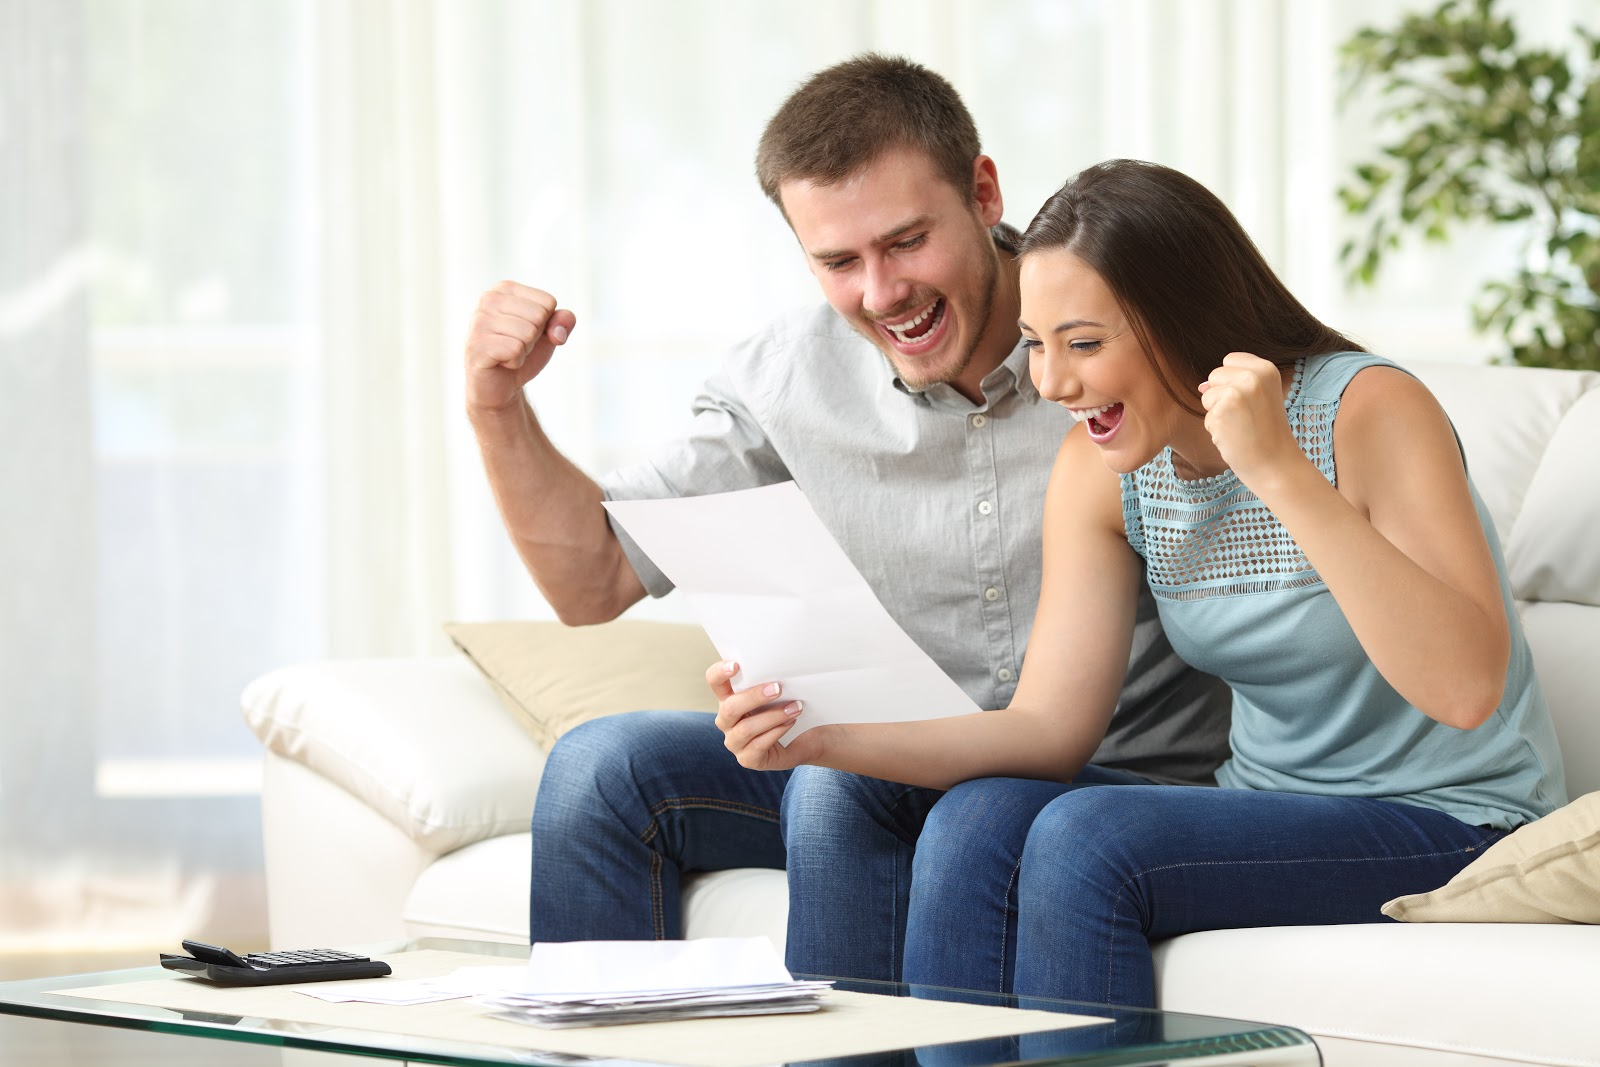 An excited couple looks at their tax refund